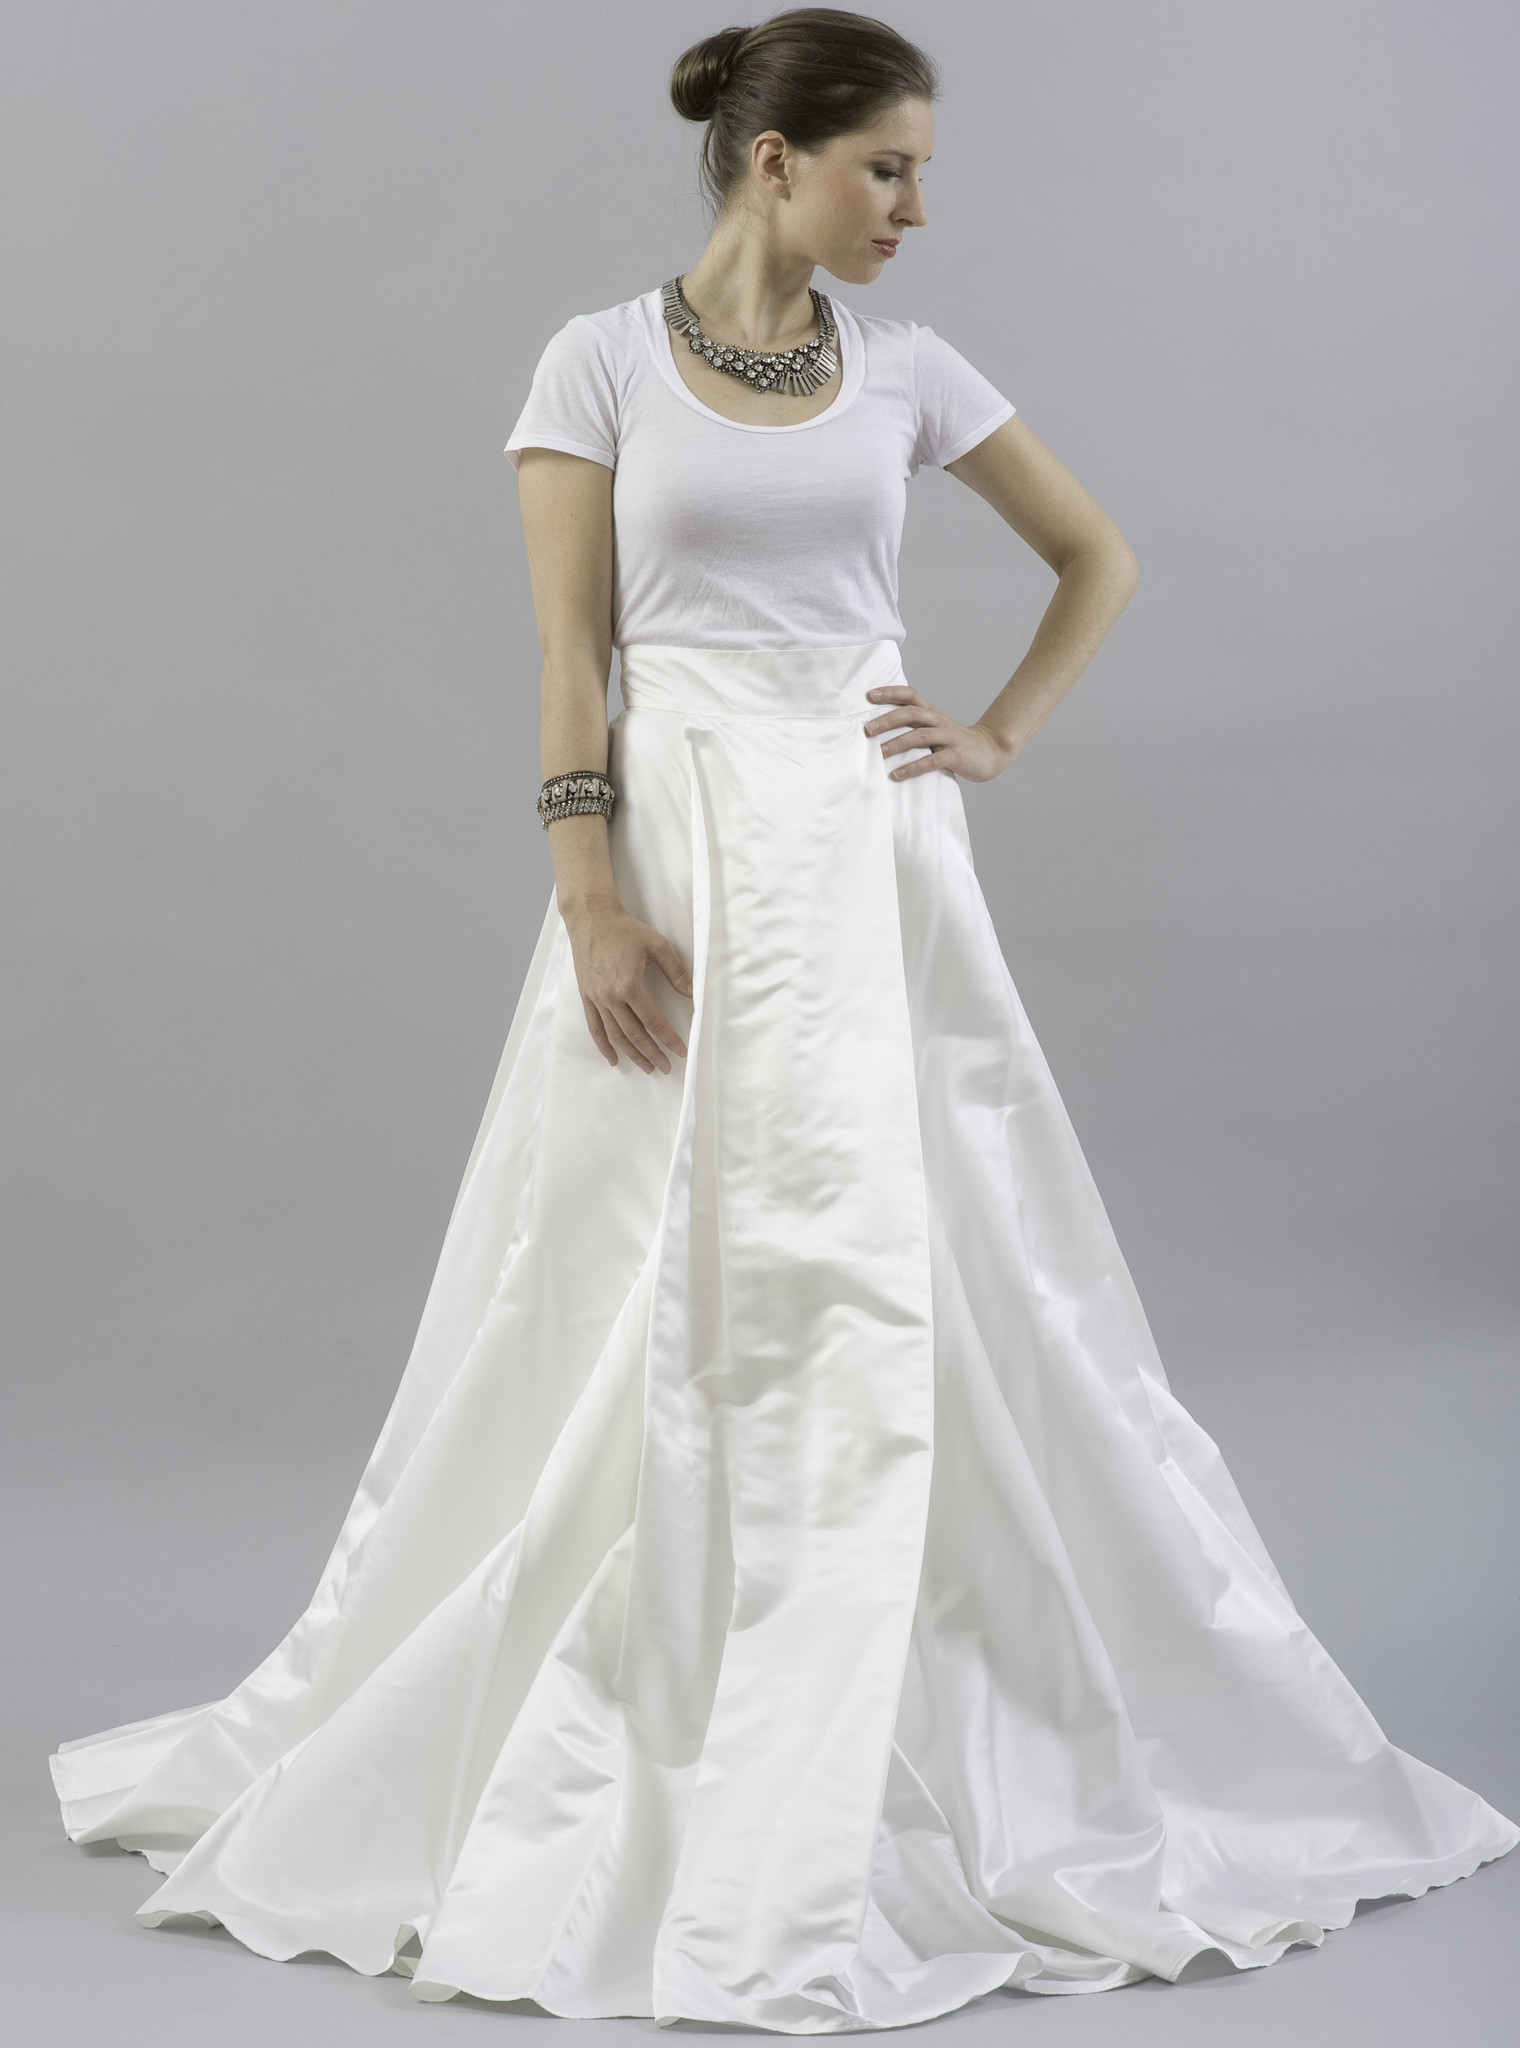 modern wedding dresses for the contemporary bride simple white wedding dresses Modern Wedding Dresses For the Contemporary Bride